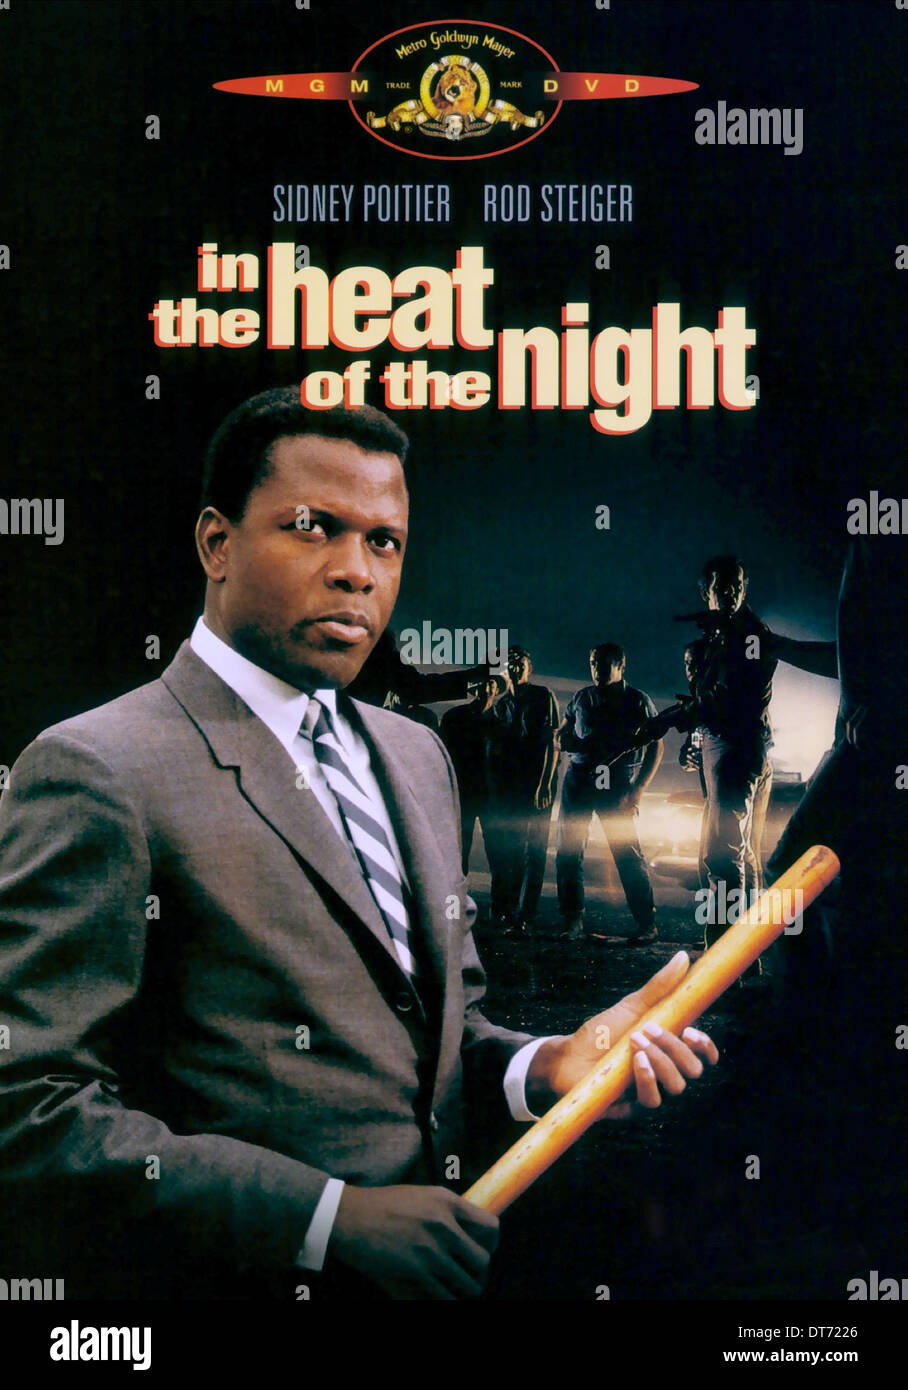 In the heat of the night Sidney Poitier movie poster